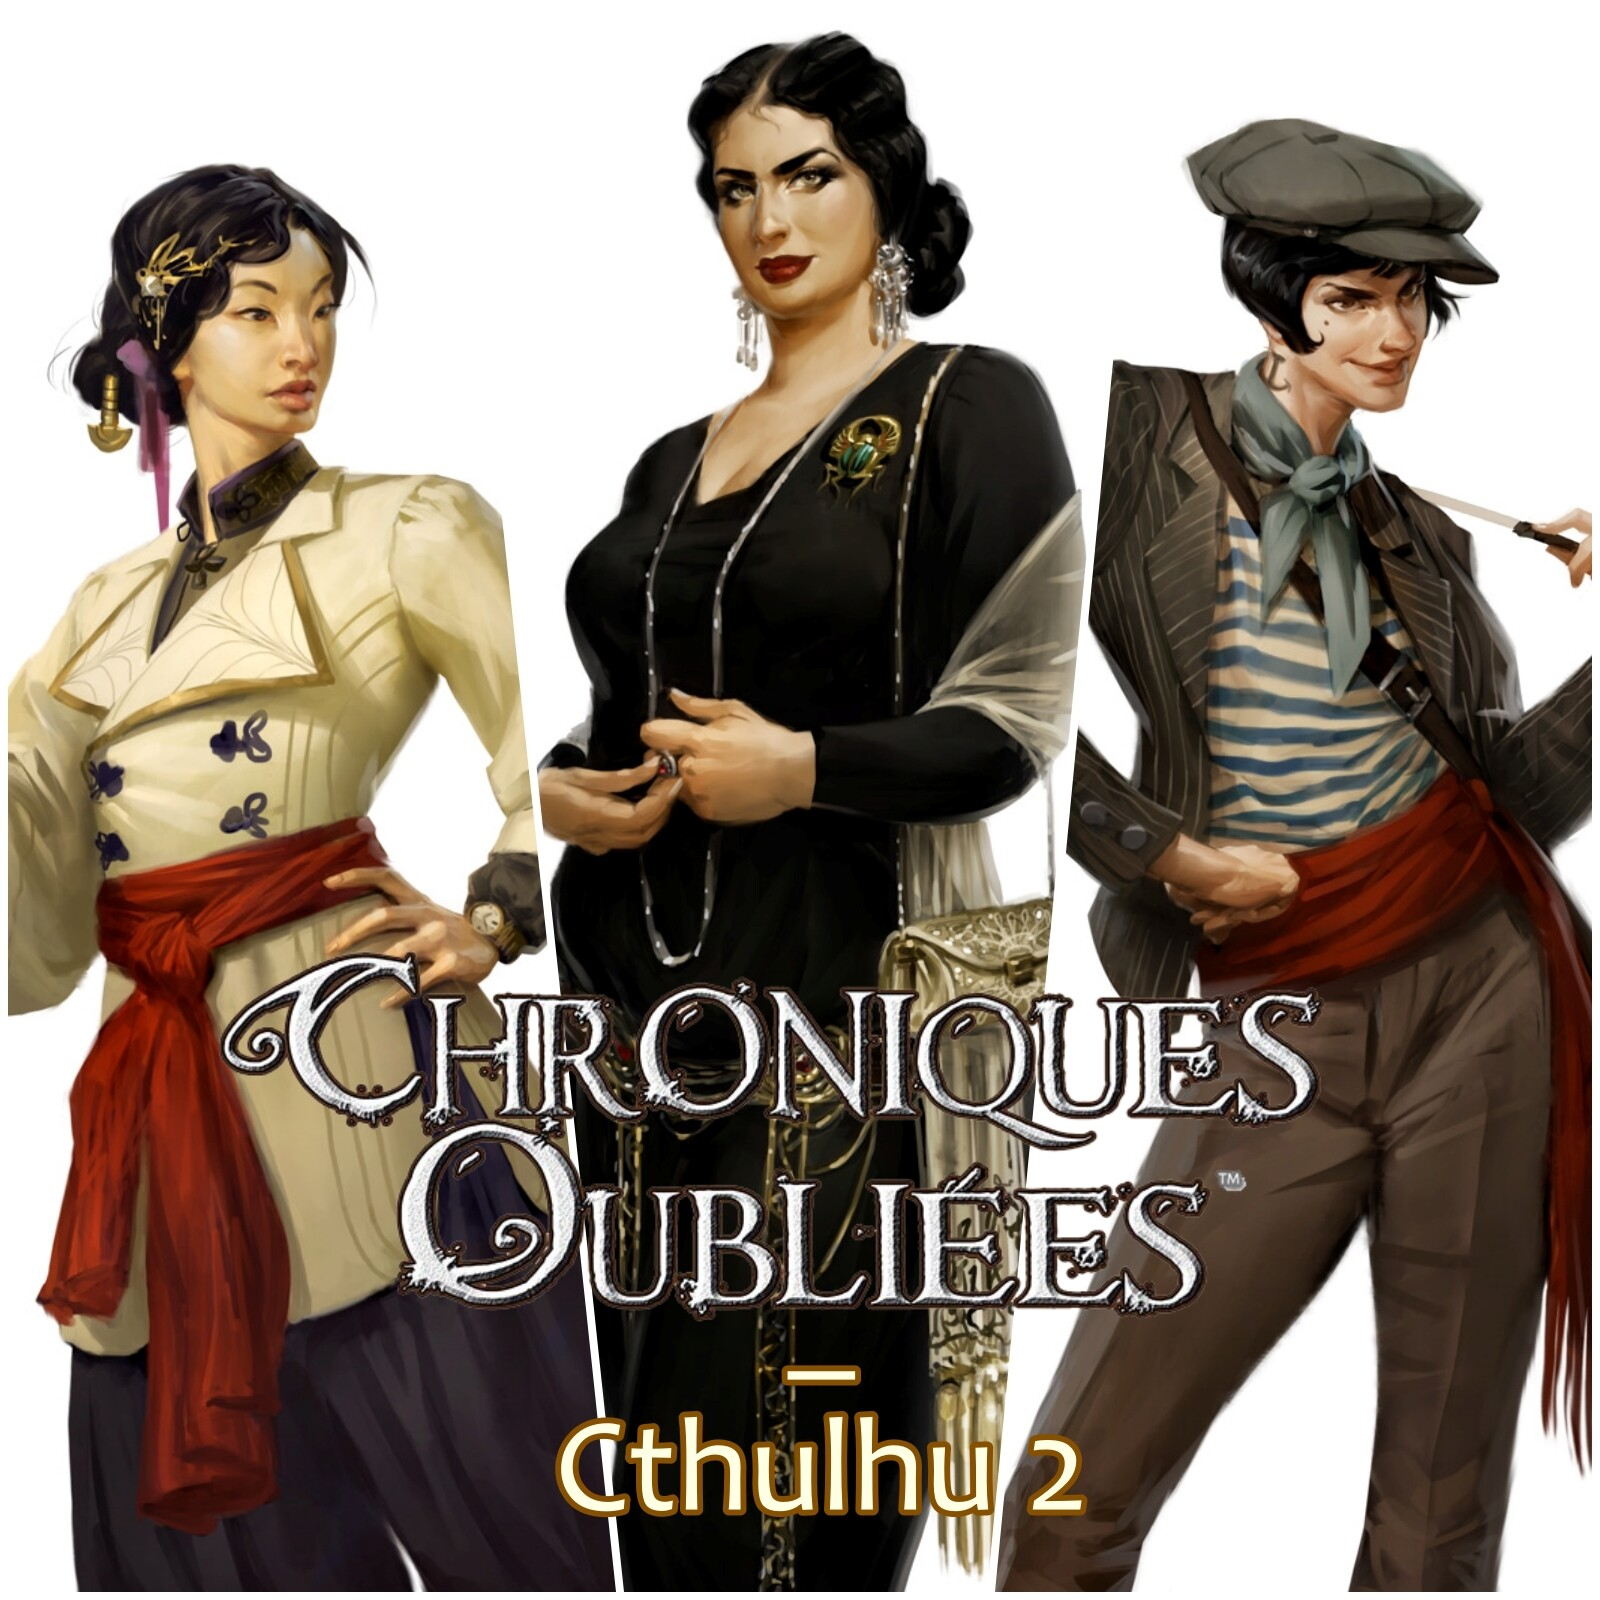 Chroniques Oubliées: Cthulhu 2 - Characters